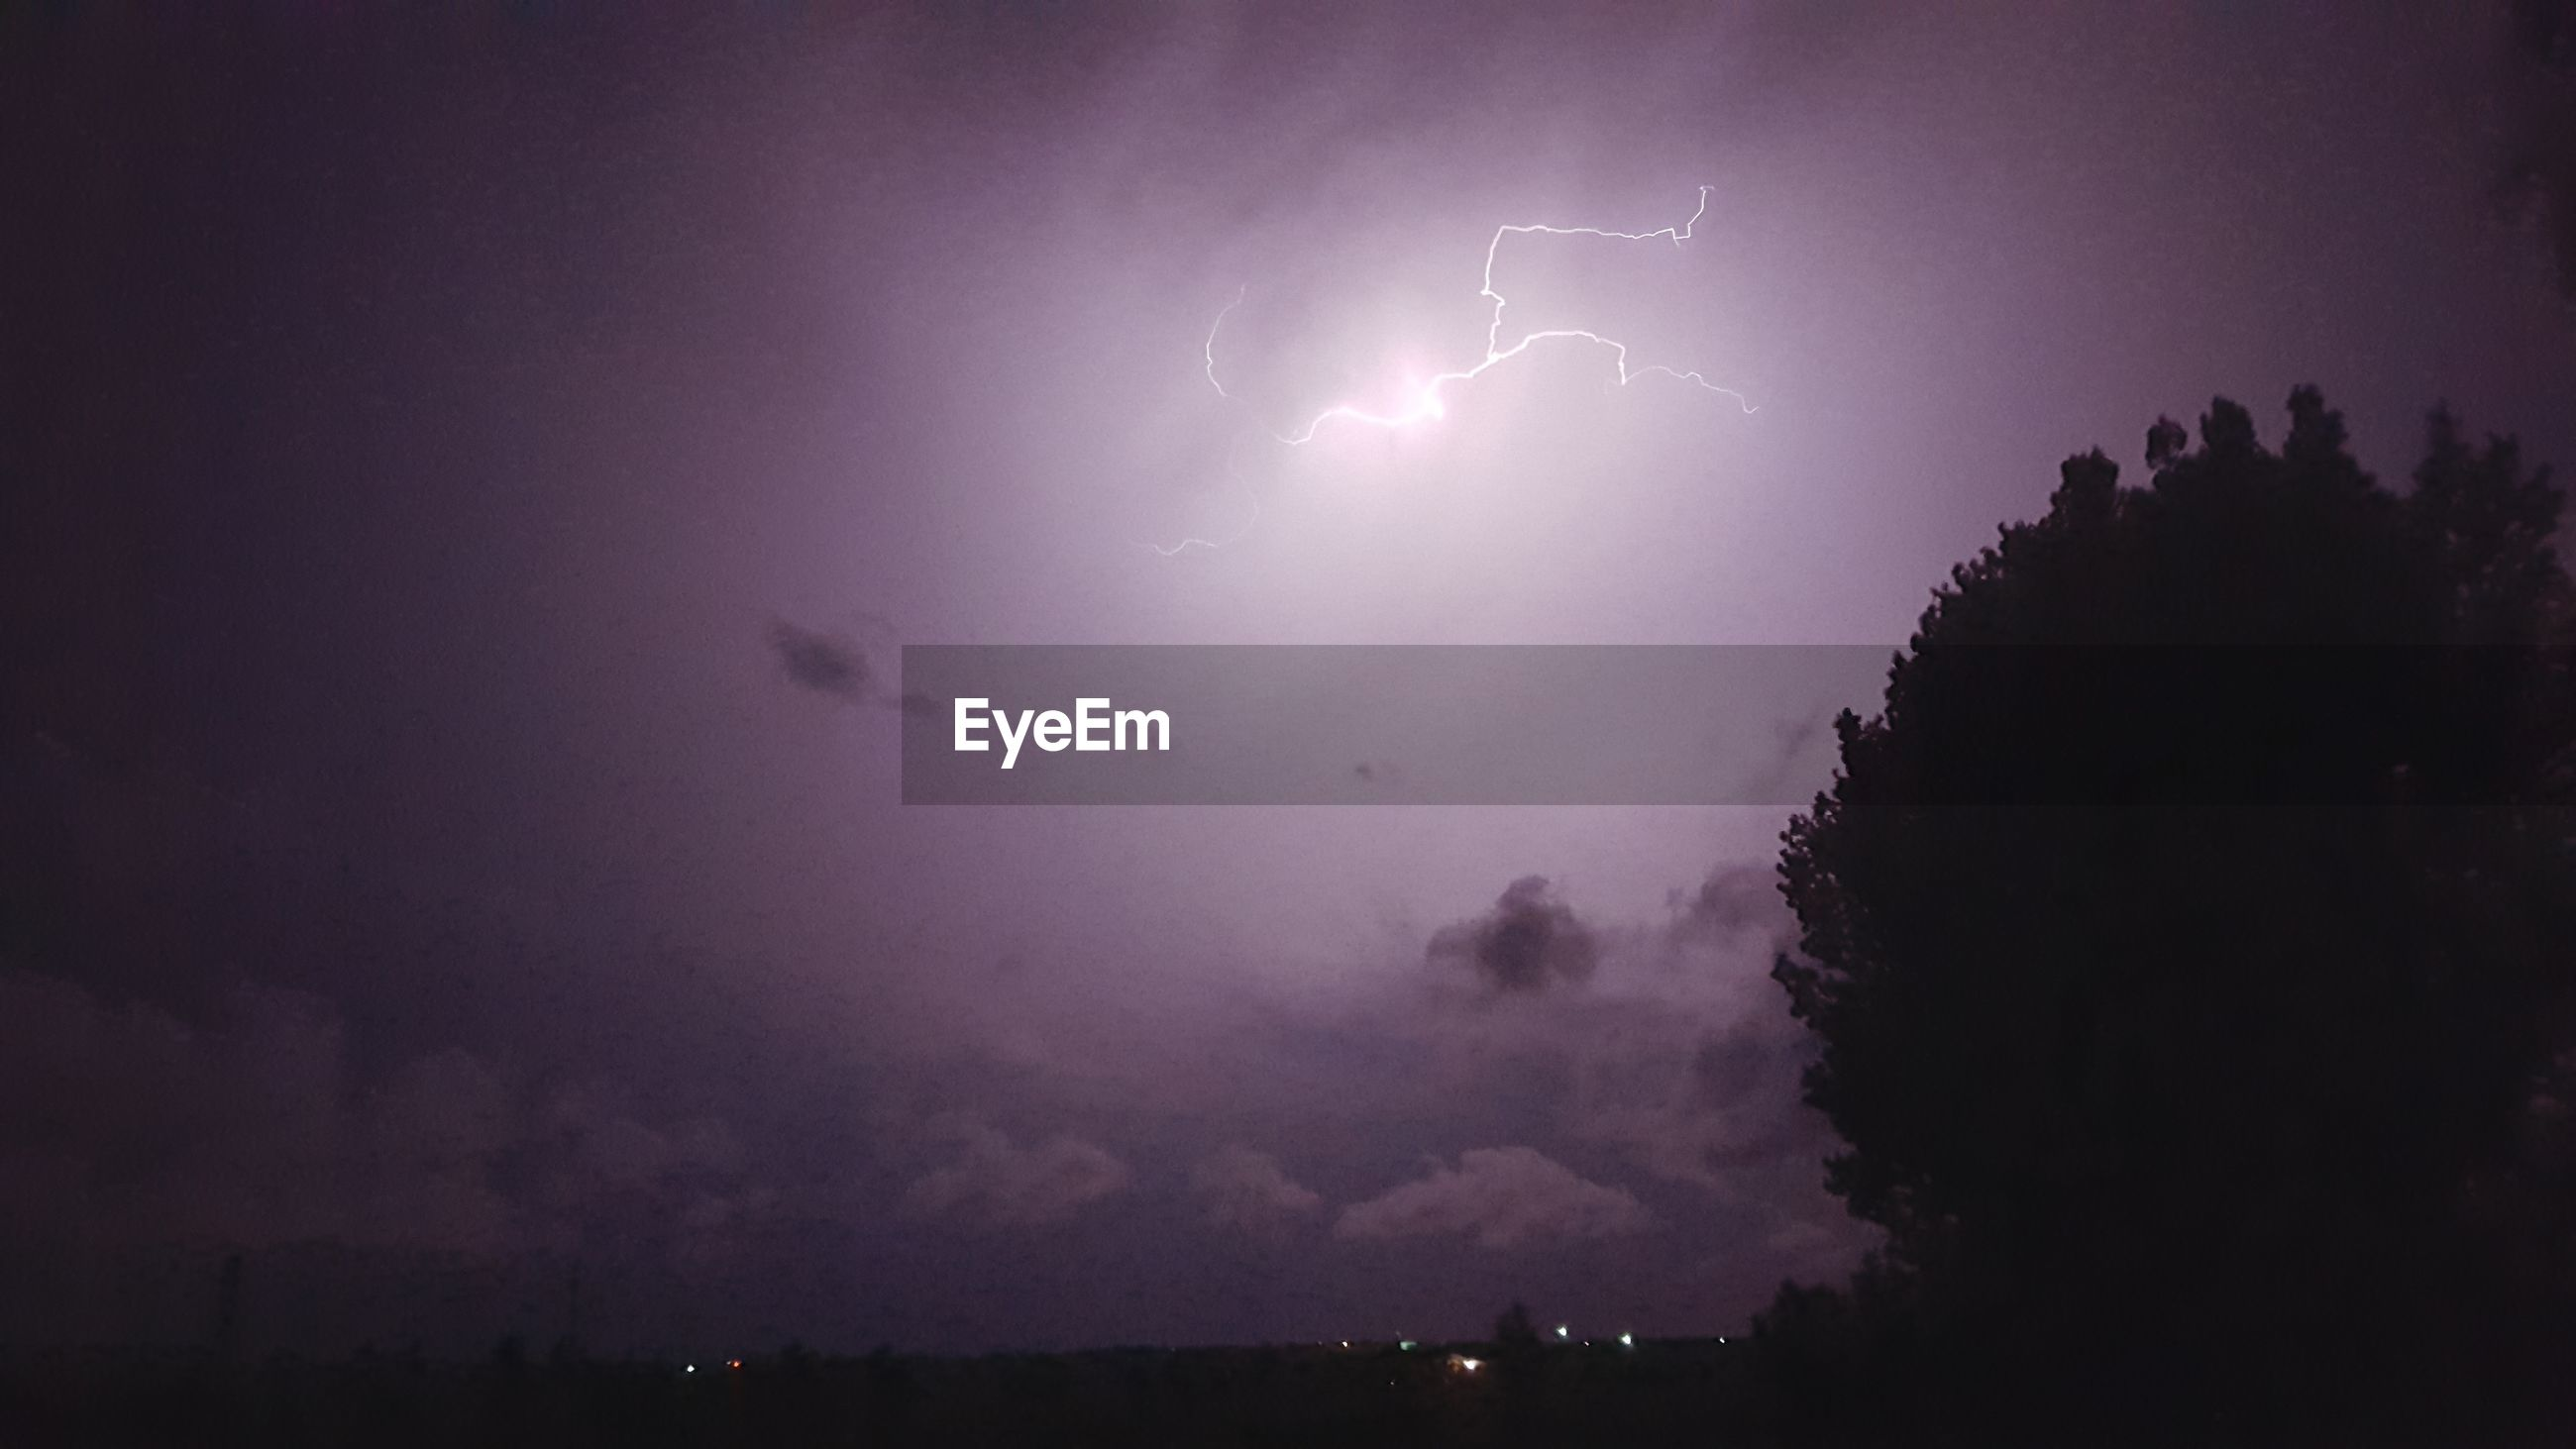 Low angle view of silhouette tree against purple cloudy sky with lightning